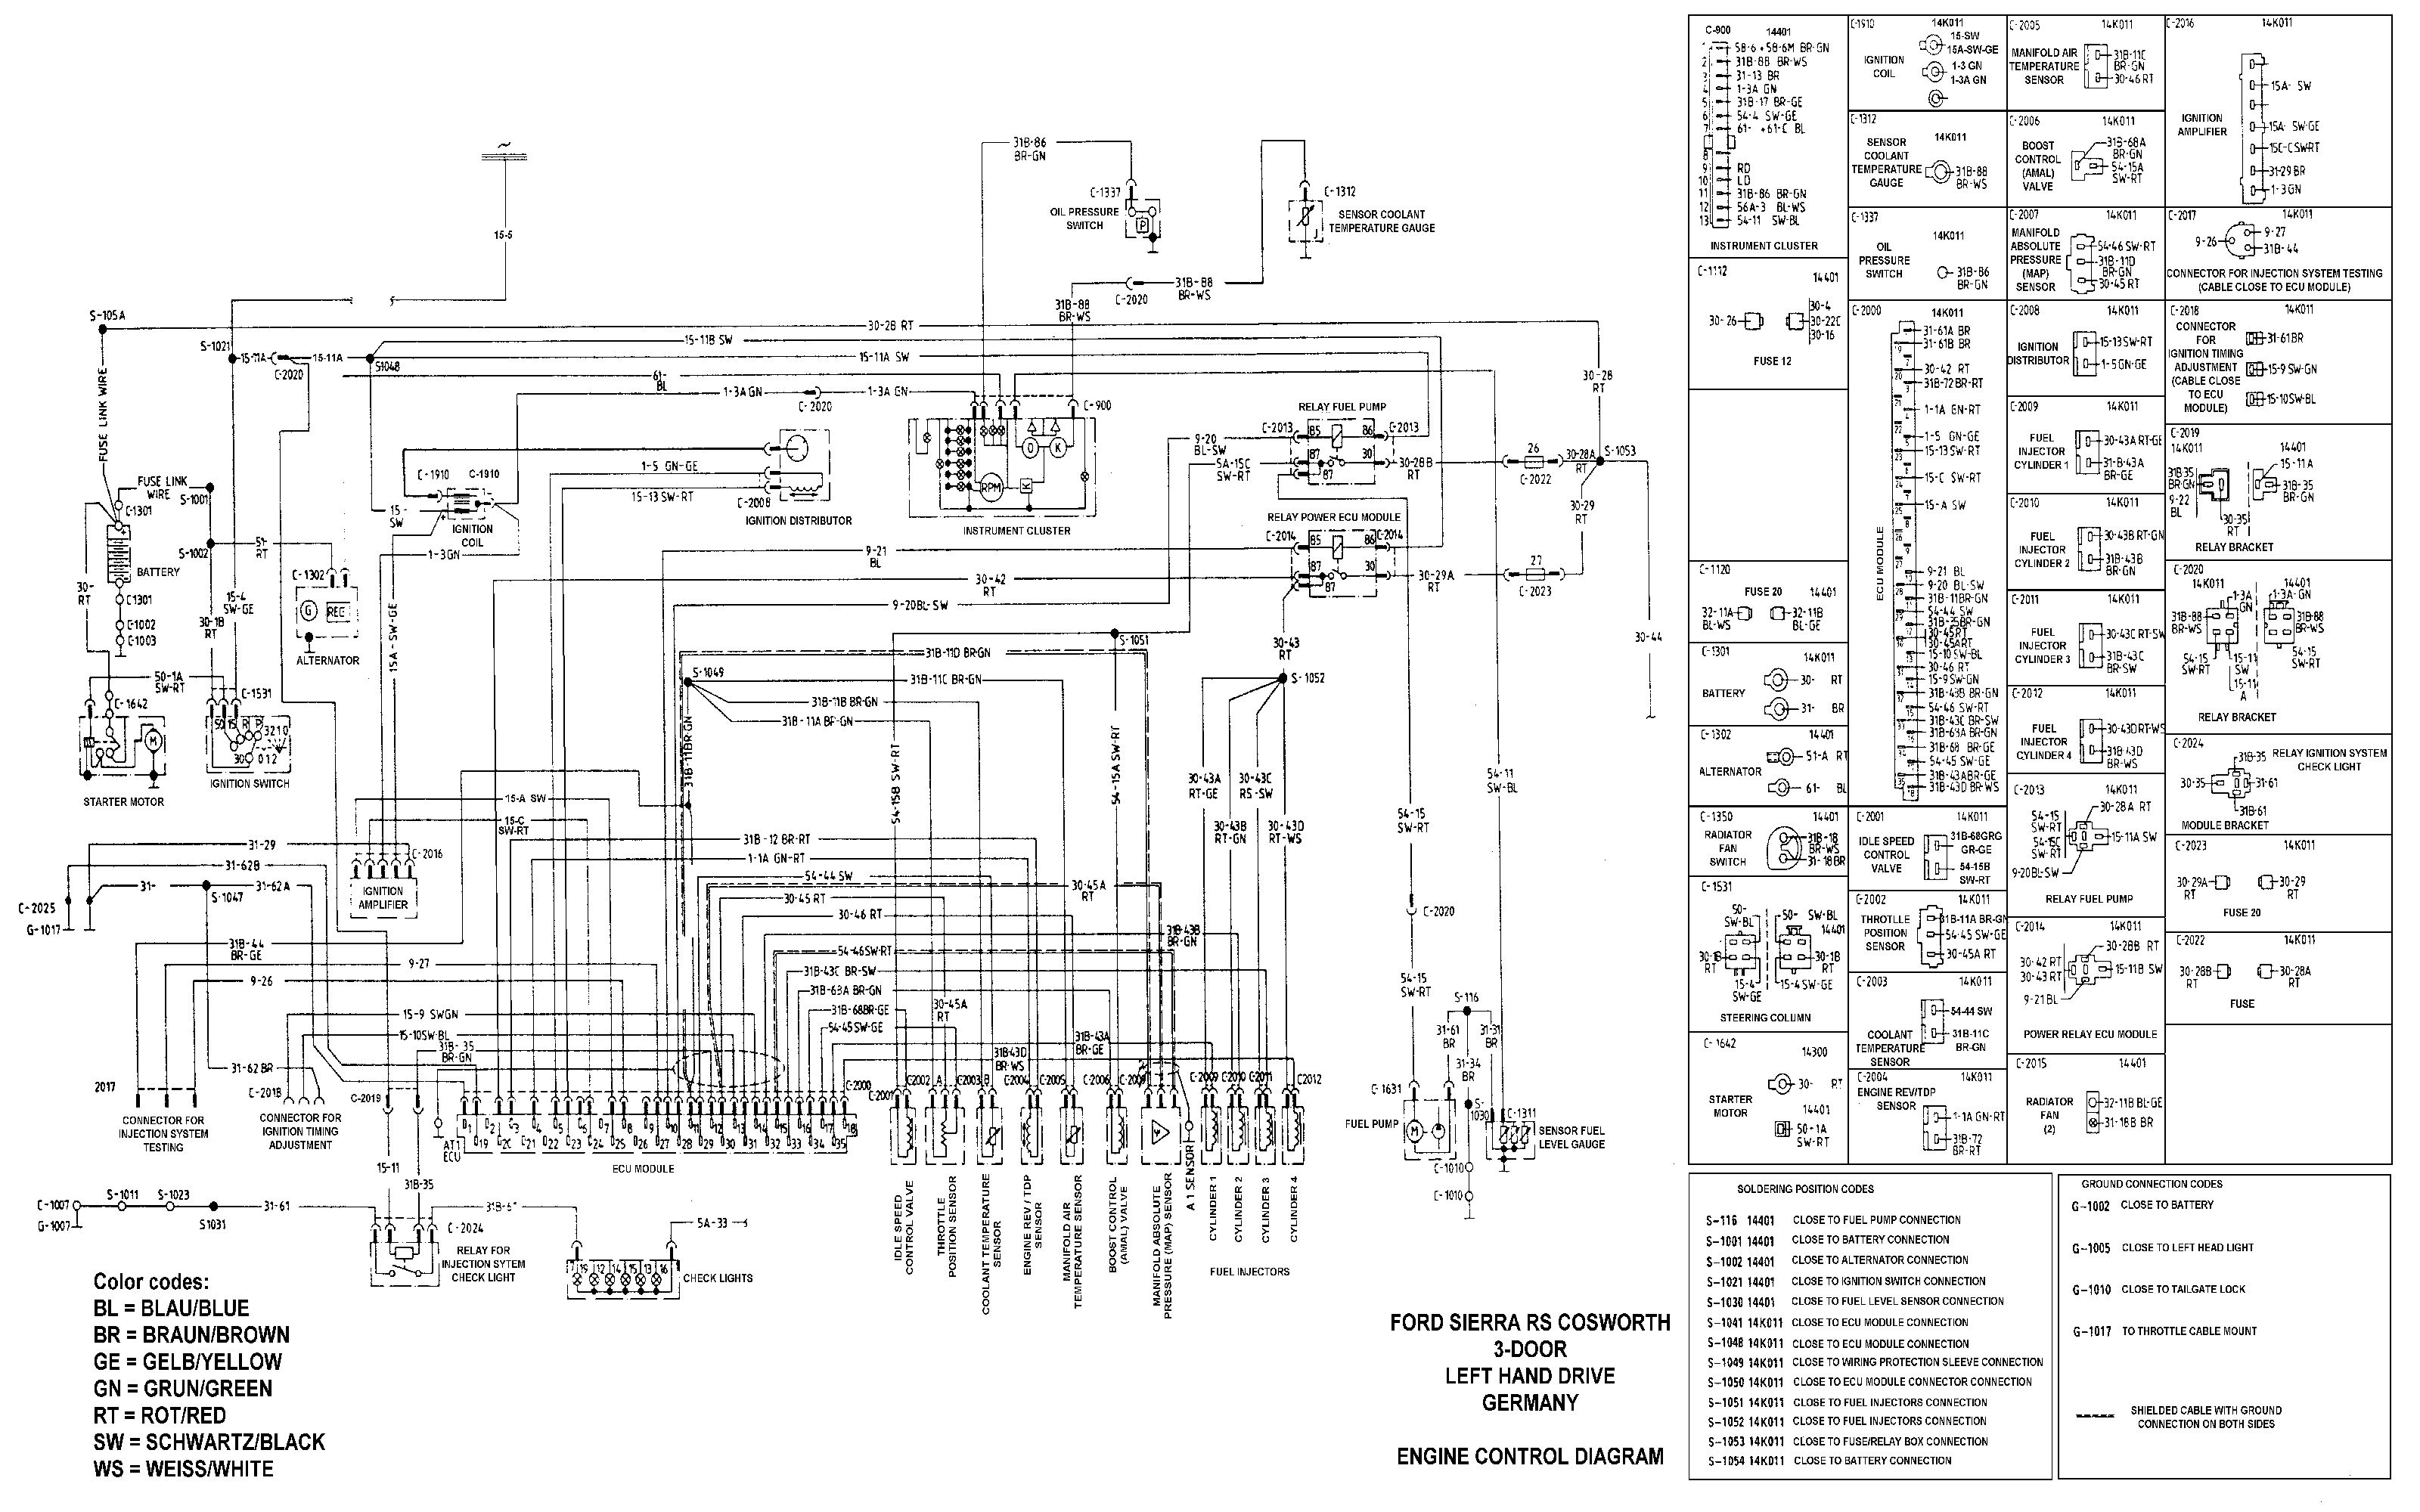 Ford Mondeo Engine Diagram Ford Focus O Sensor Wiring Diagram And Ford Focus Mk Wiring Of Ford Mondeo Engine Diagram